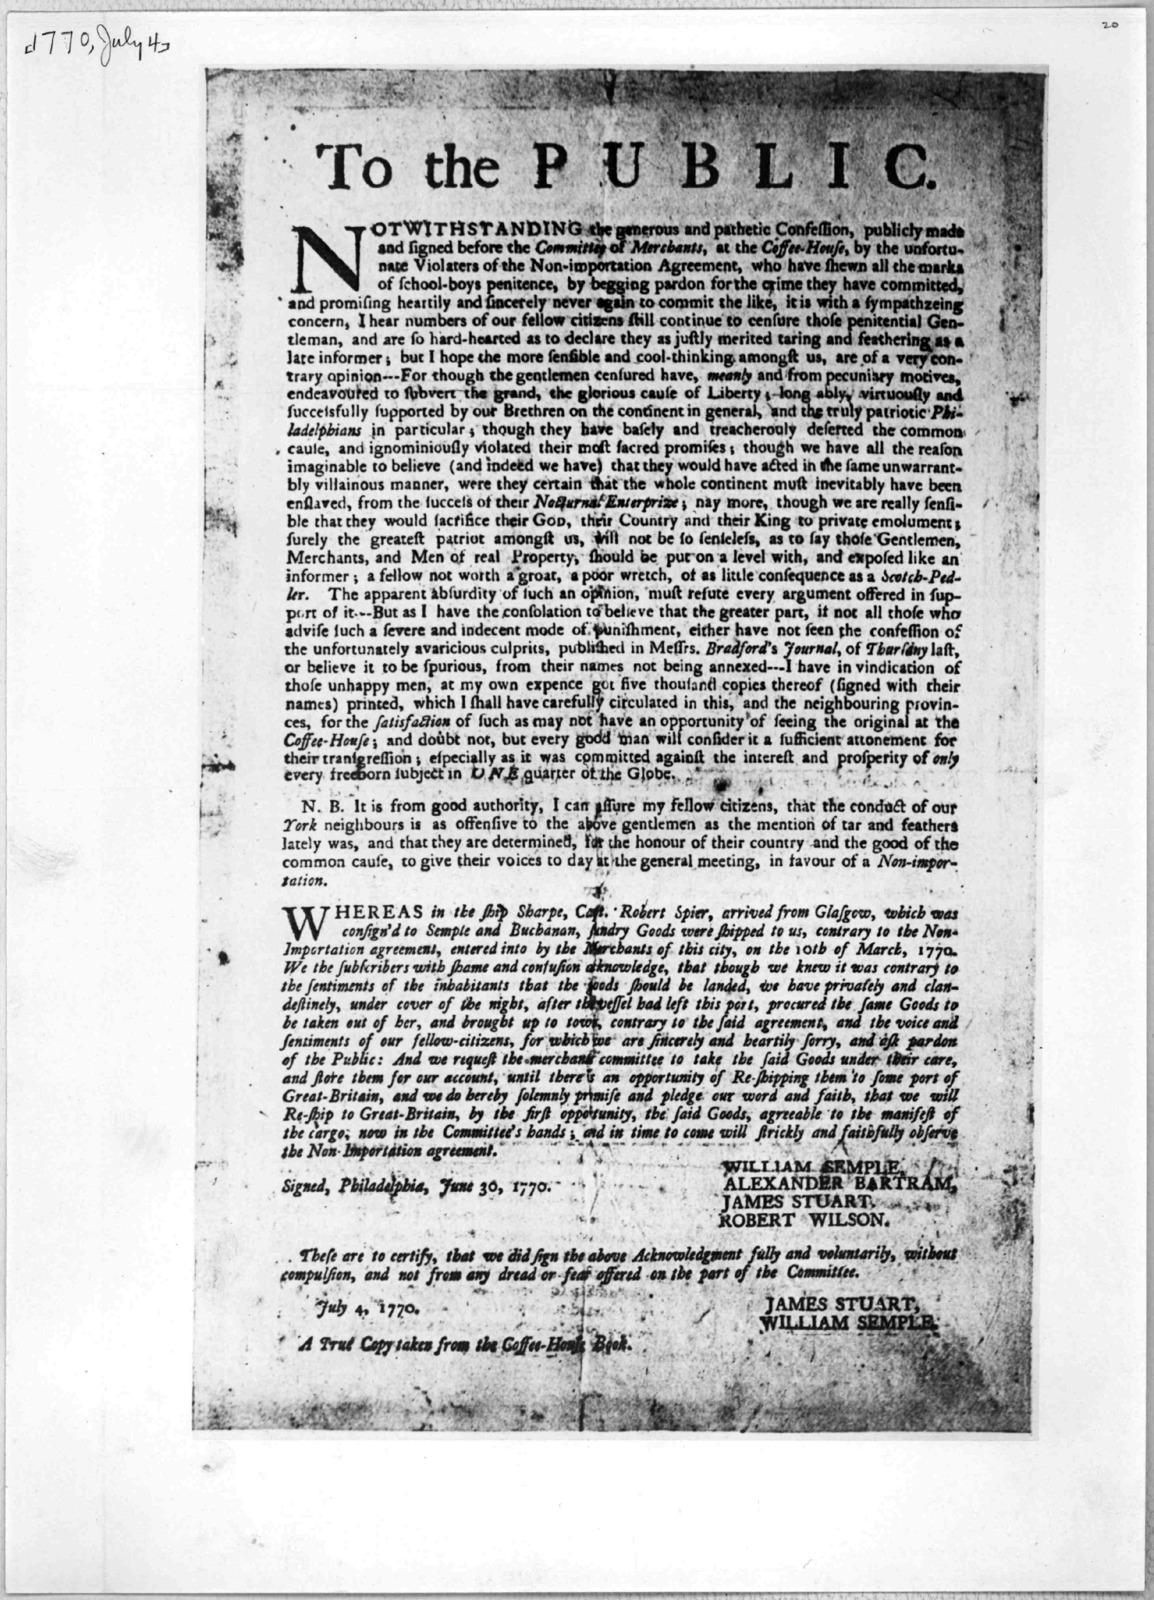 To the public [acknowledgement of William Semple, Alexander Bartram, James Stuart, Robert Wilson that they have violated the non-importation agreement] Signed Philadelphia June 30, 1770. These are to certify that we did sign the above acknowledg